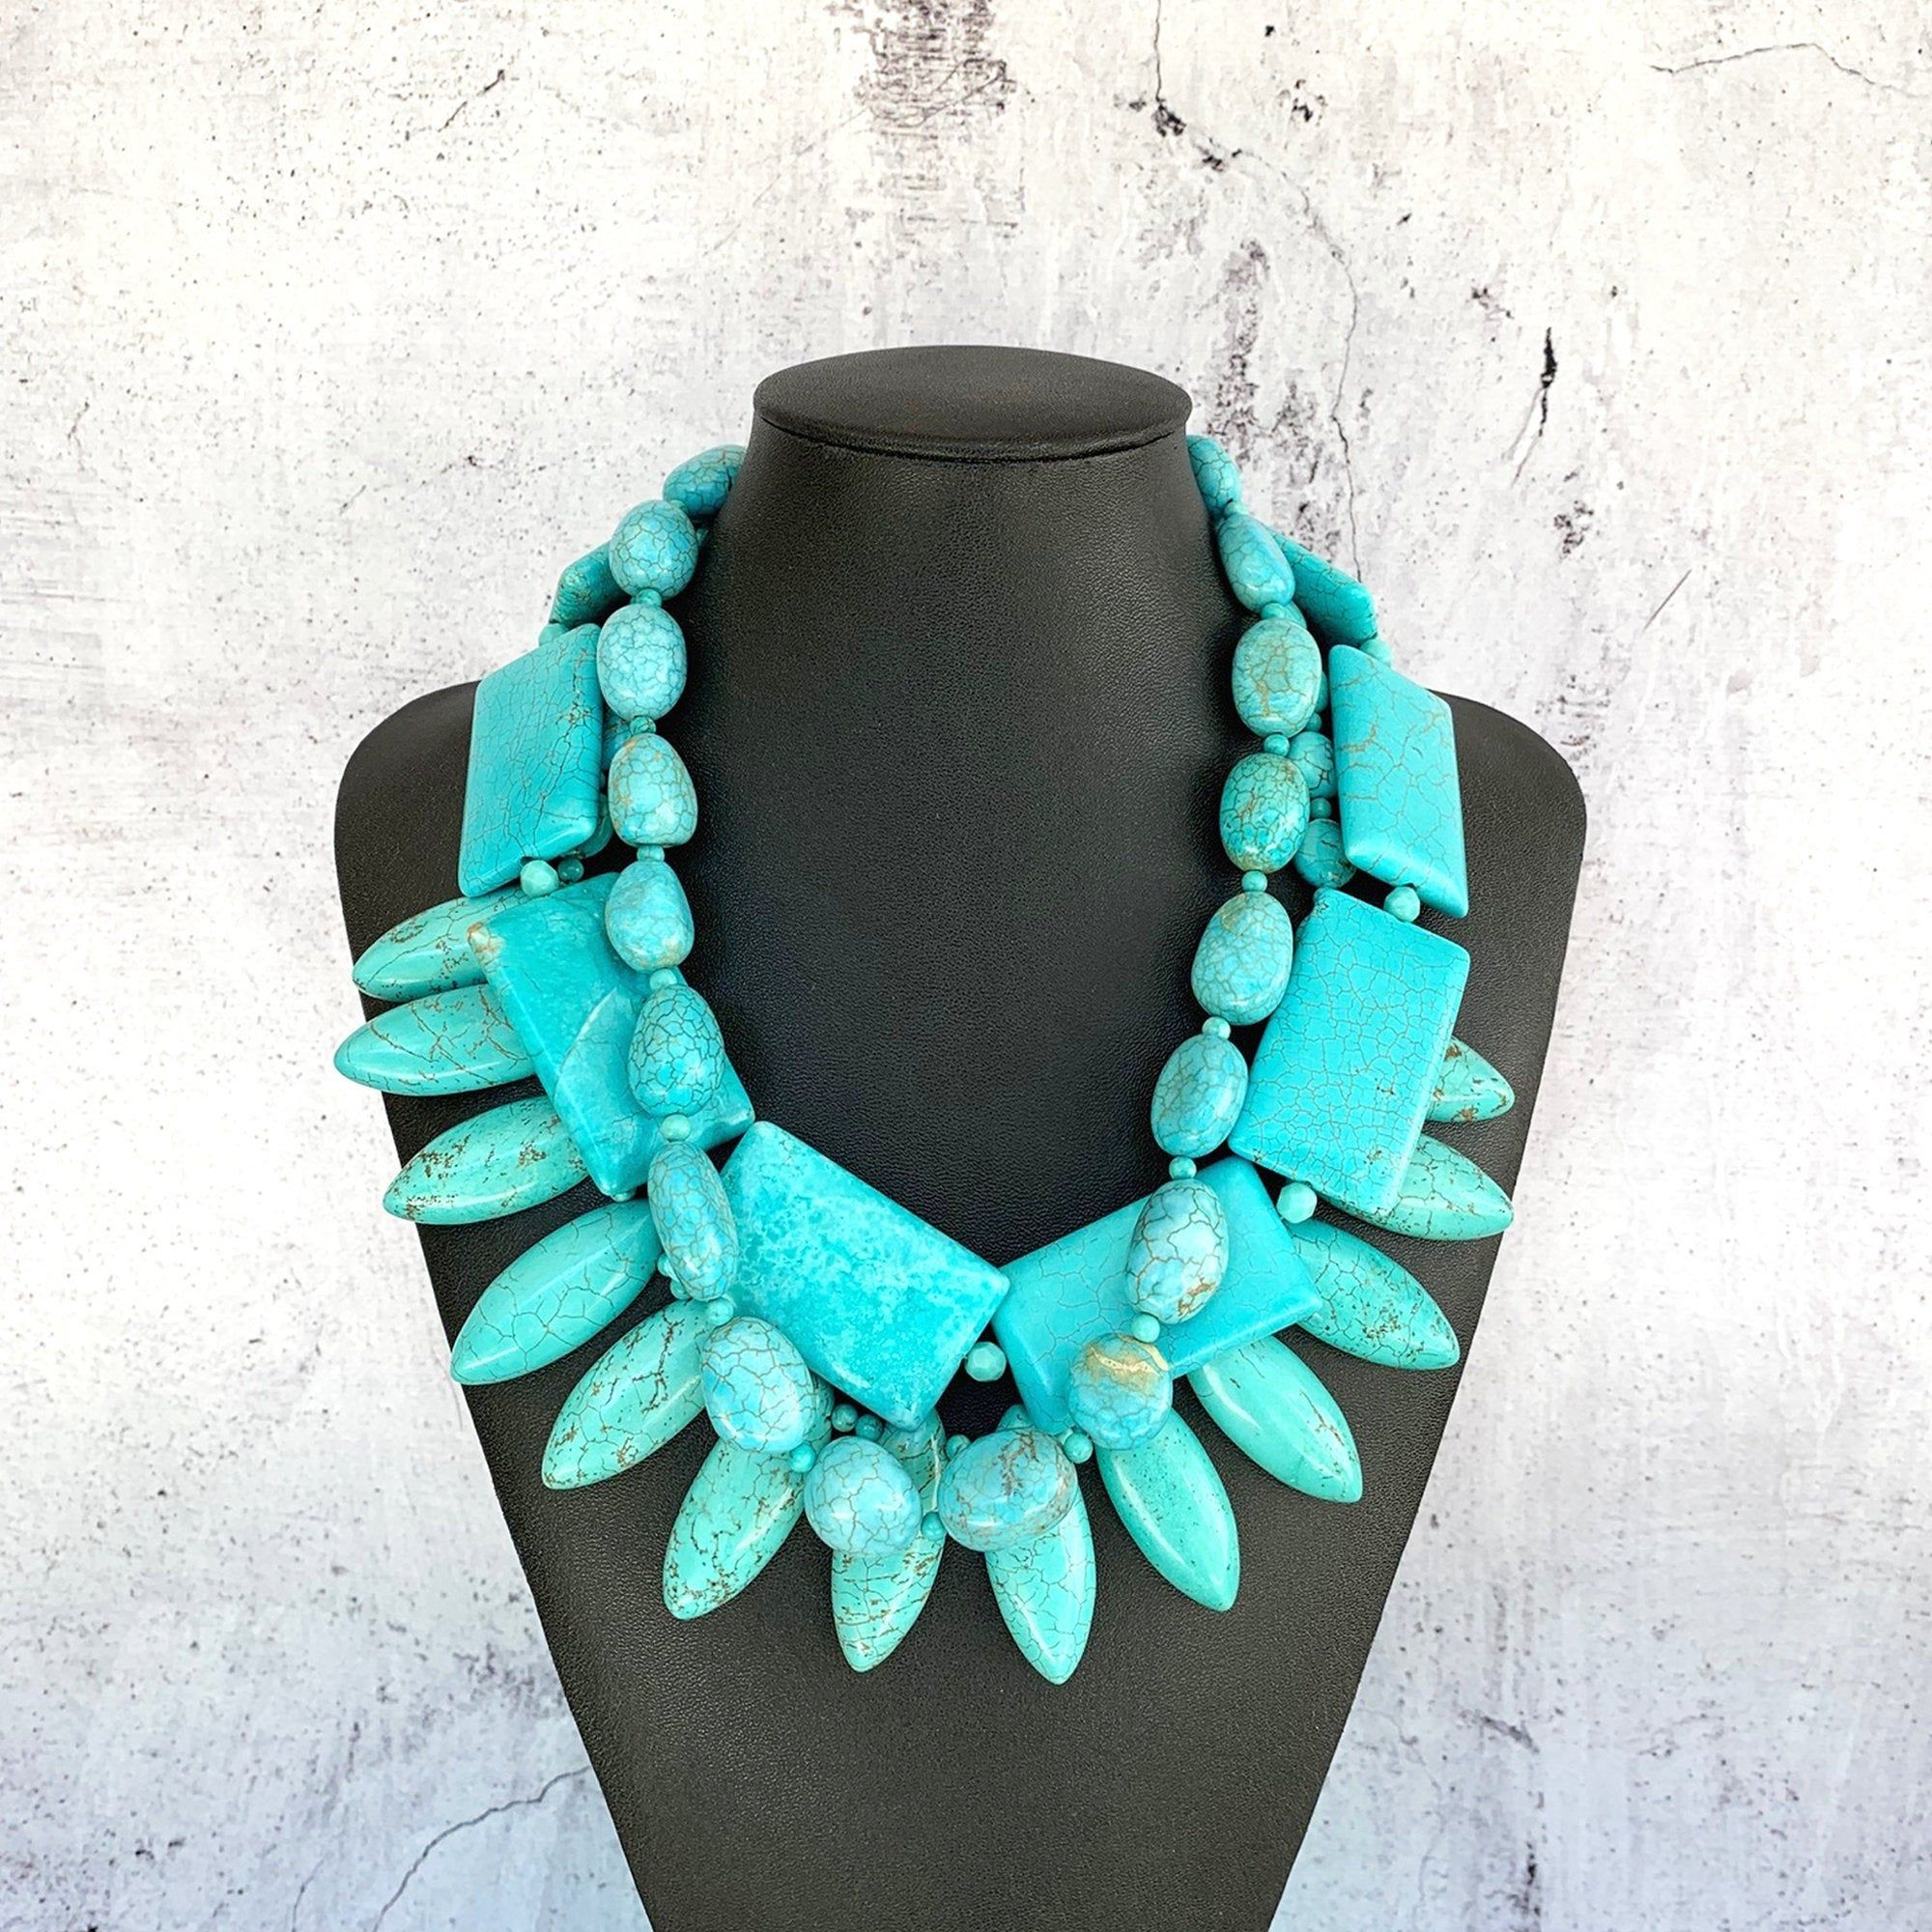 boho necklace statement necklace for women unique statement jewelry Teal Wooden Necklace turquoise necklace big bold chunky necklace